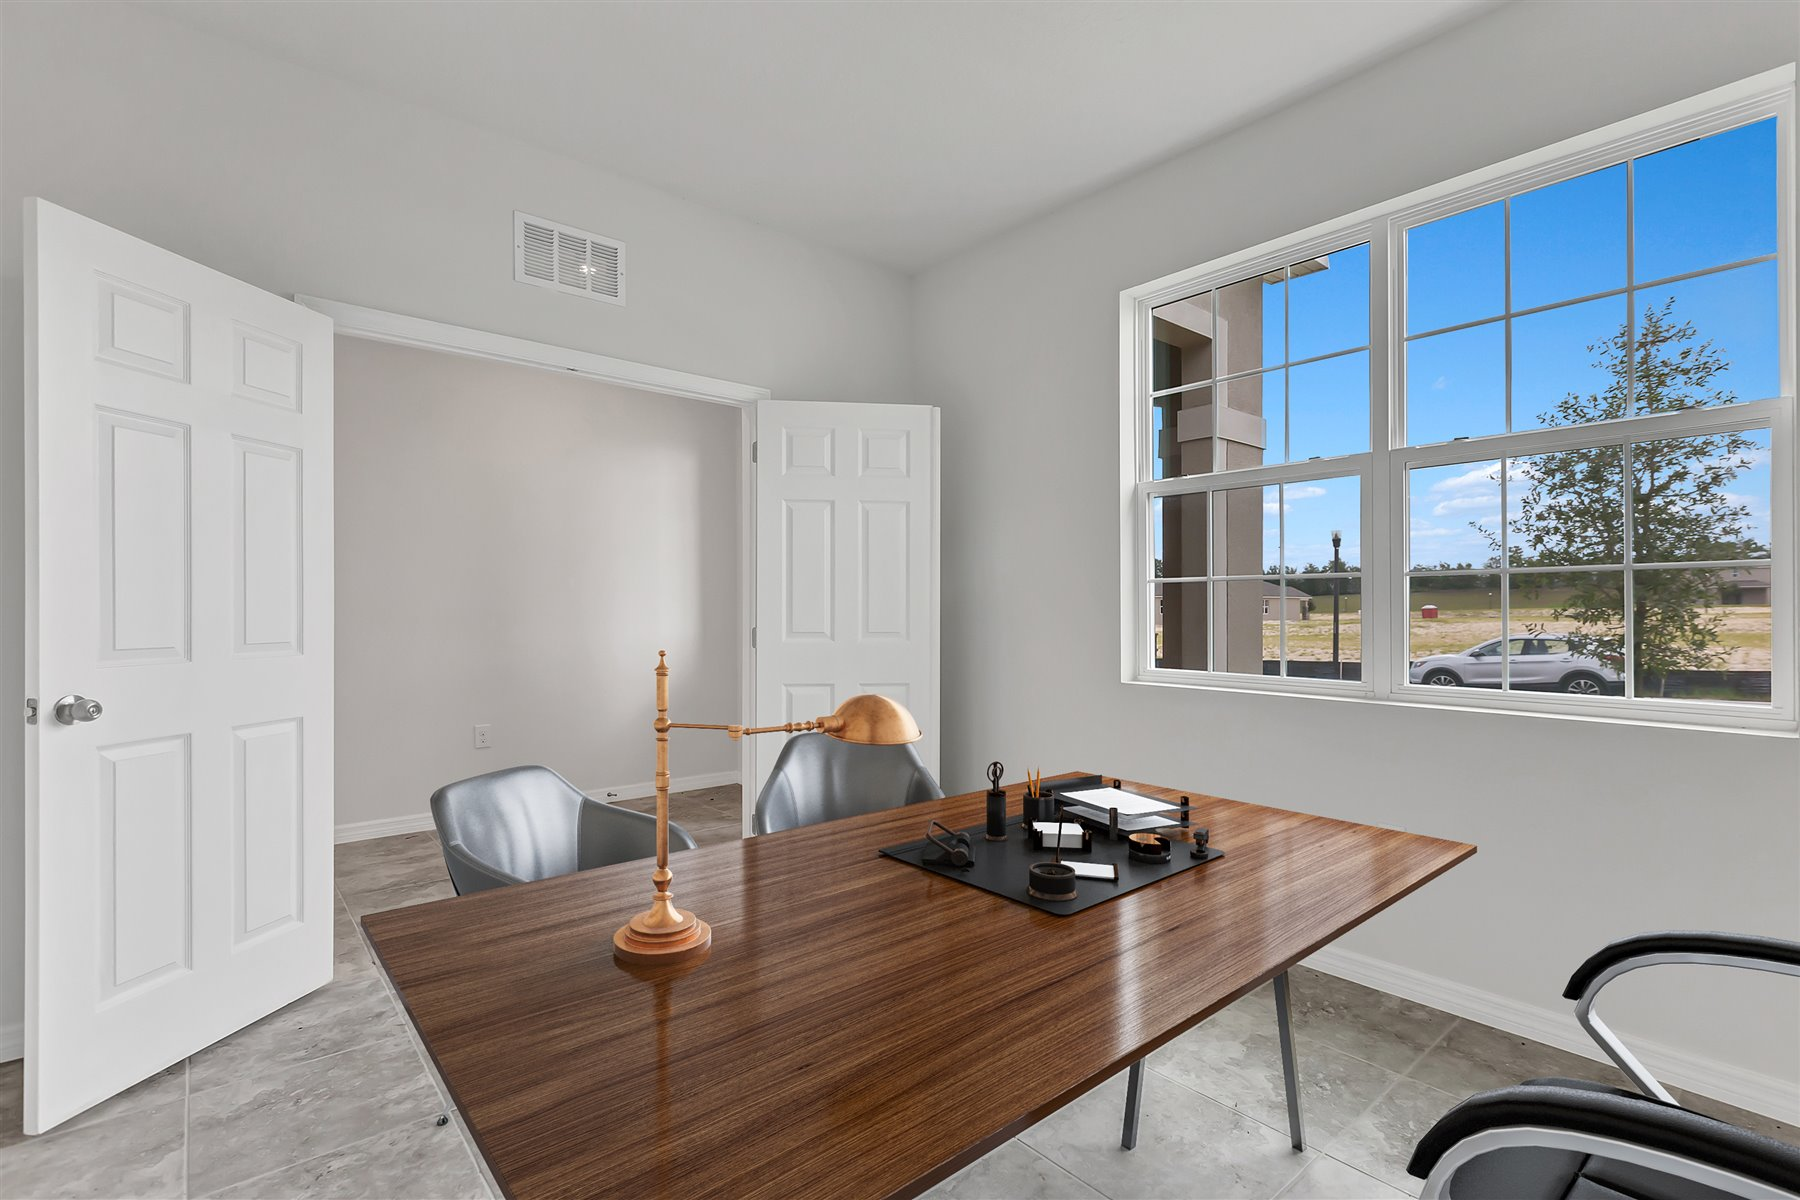 Emma Plan Study Room at Waterbrooke in Clermont Florida by Mattamy Homes